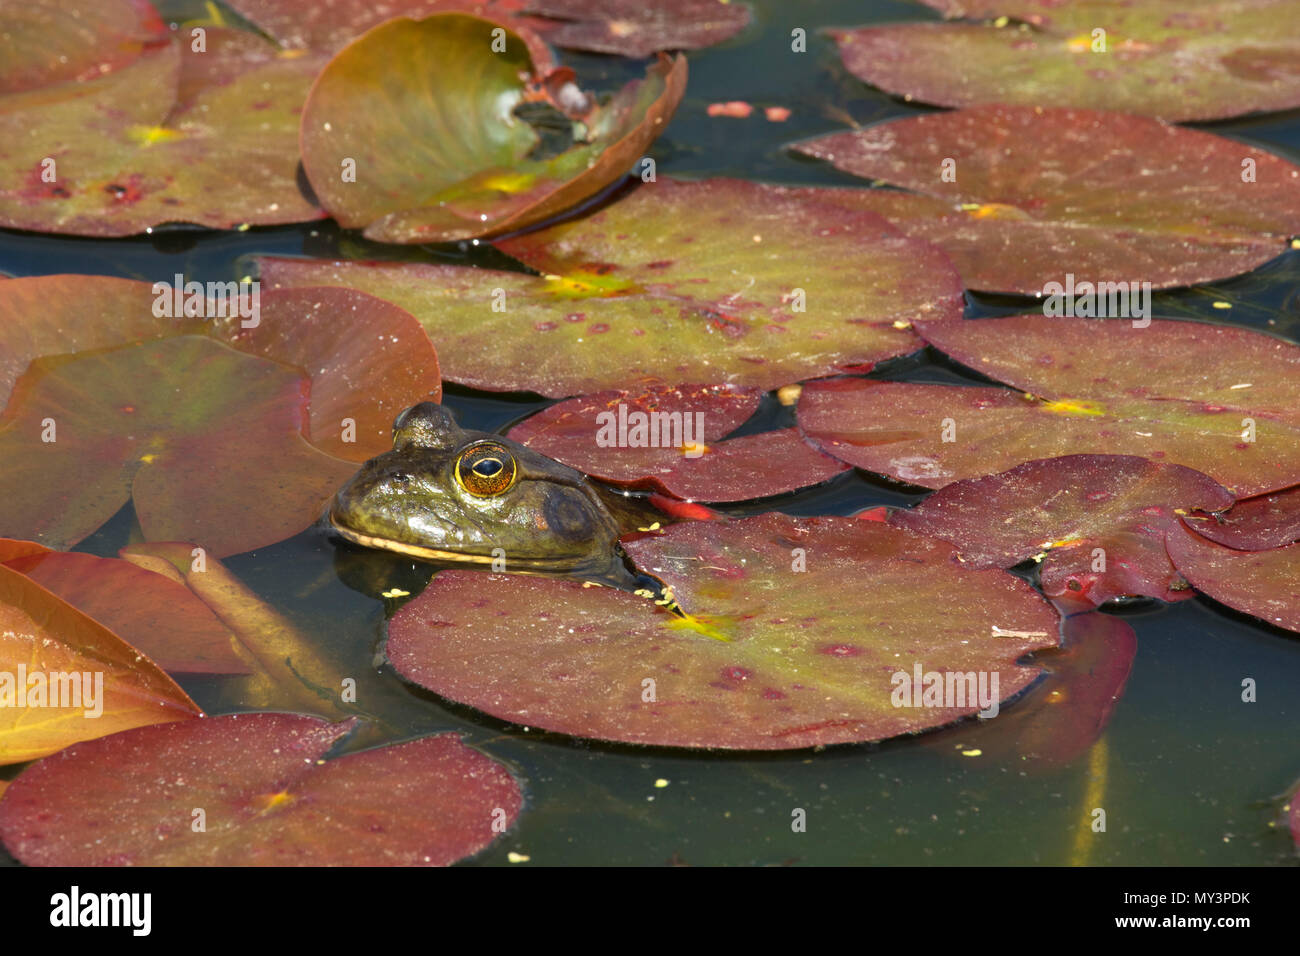 Frog in lily pads, Oregon Garden, Silverton, Oregon - Stock Image